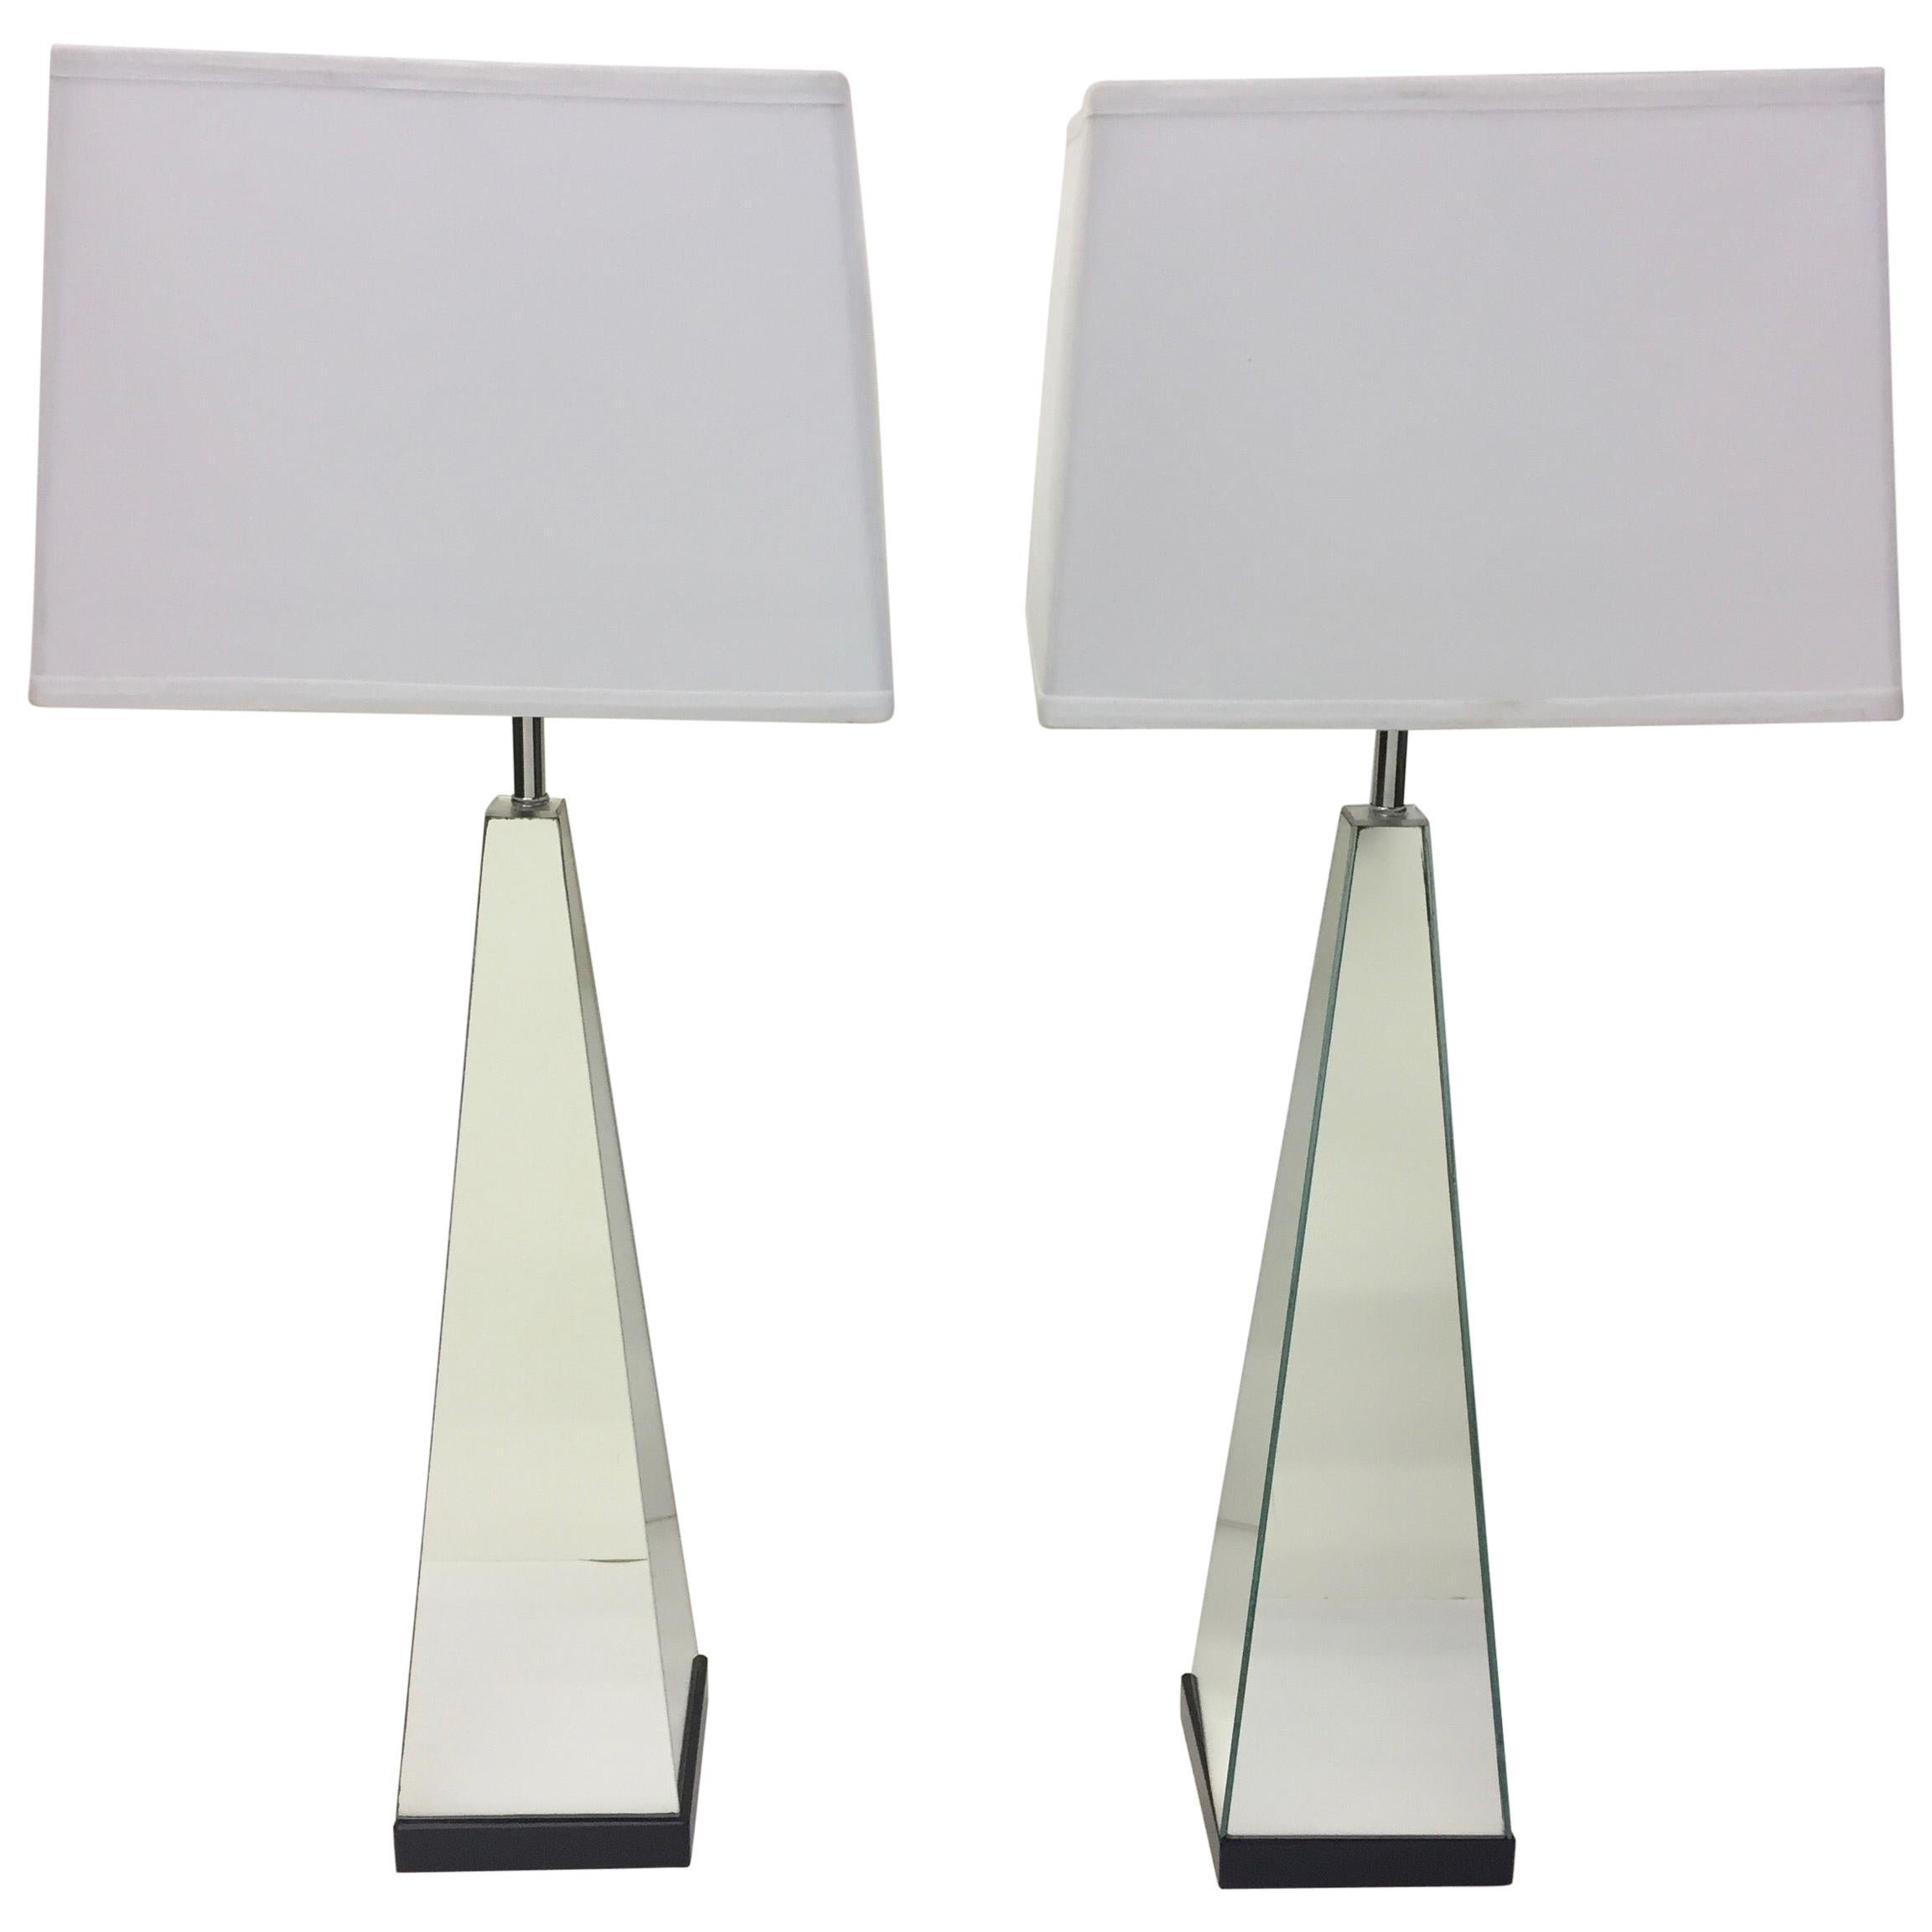 Pair of Mid-Century Modern Mirrored Obelisk Table Lamps